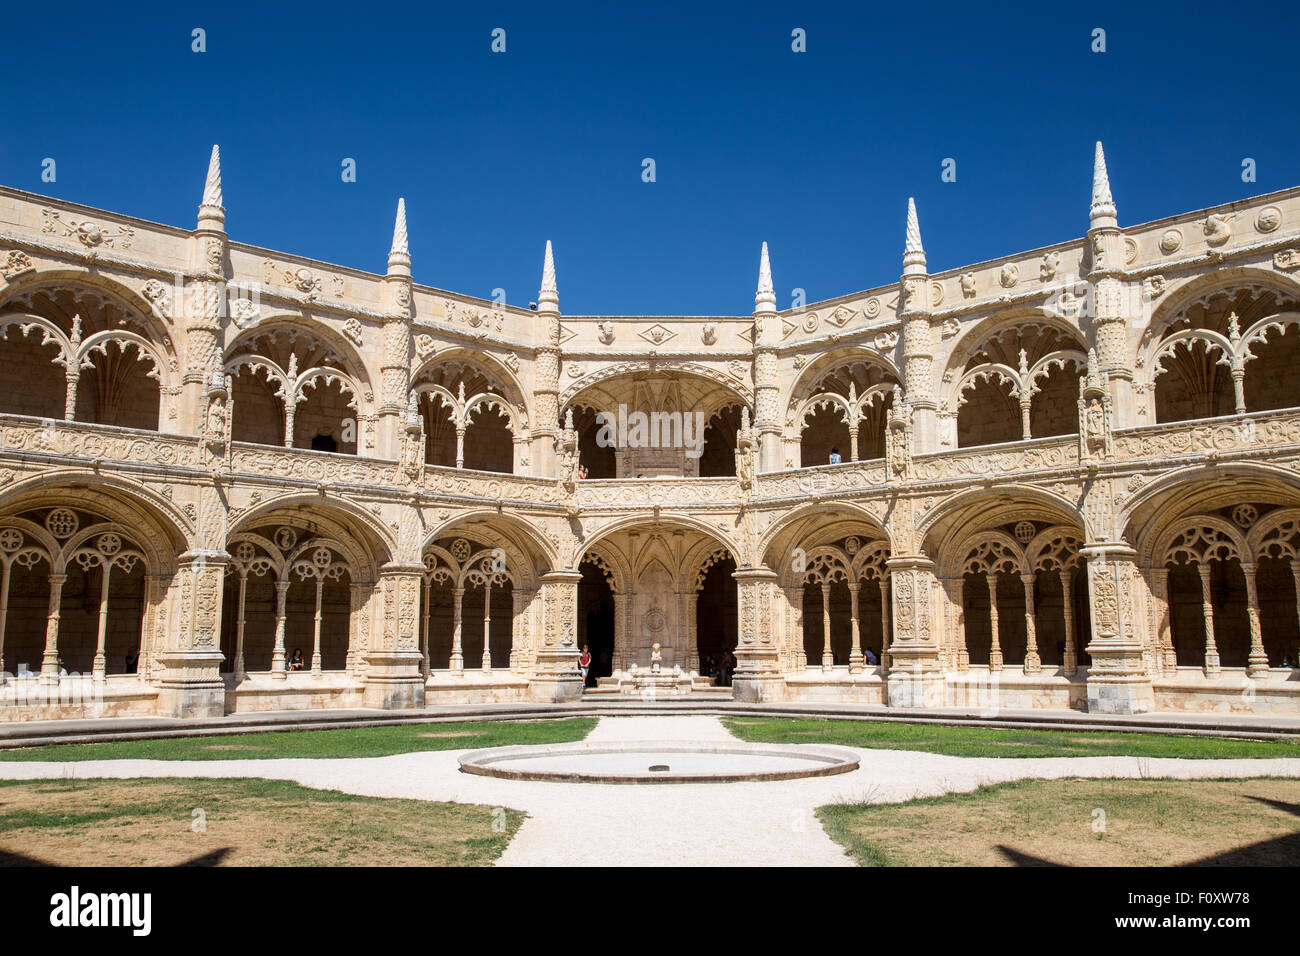 Cloisters in the Mosteiro dos Jerónimos, the monastery at Belem, Lisbon, Portugal - Stock Image